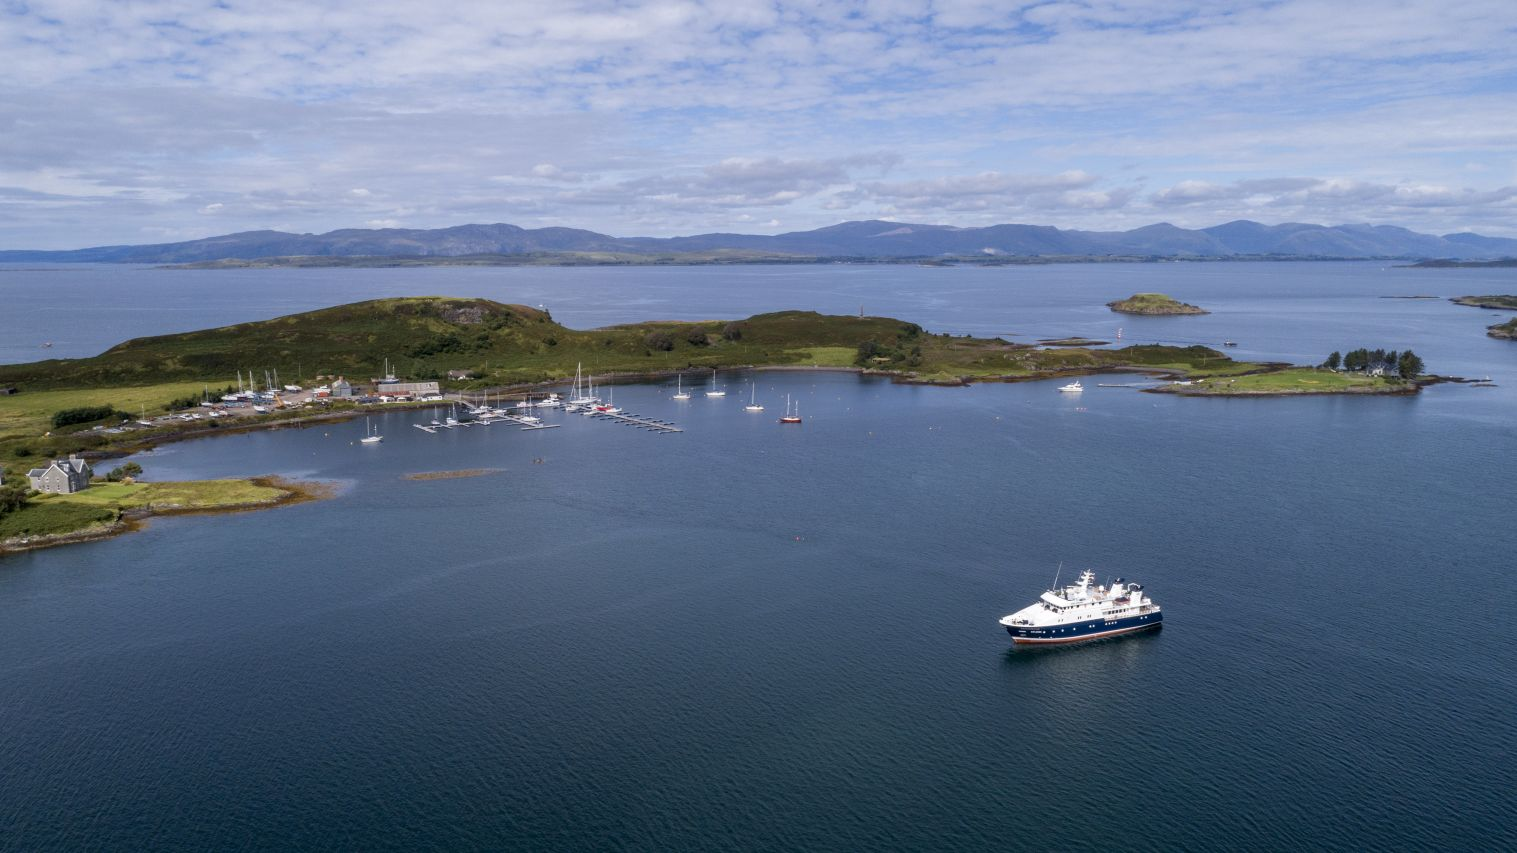 Embark on an unforgettable expedition through West Scotland and the Hebrides onboard explorer yacht Hanse Explorer with EYOS Expeditions.